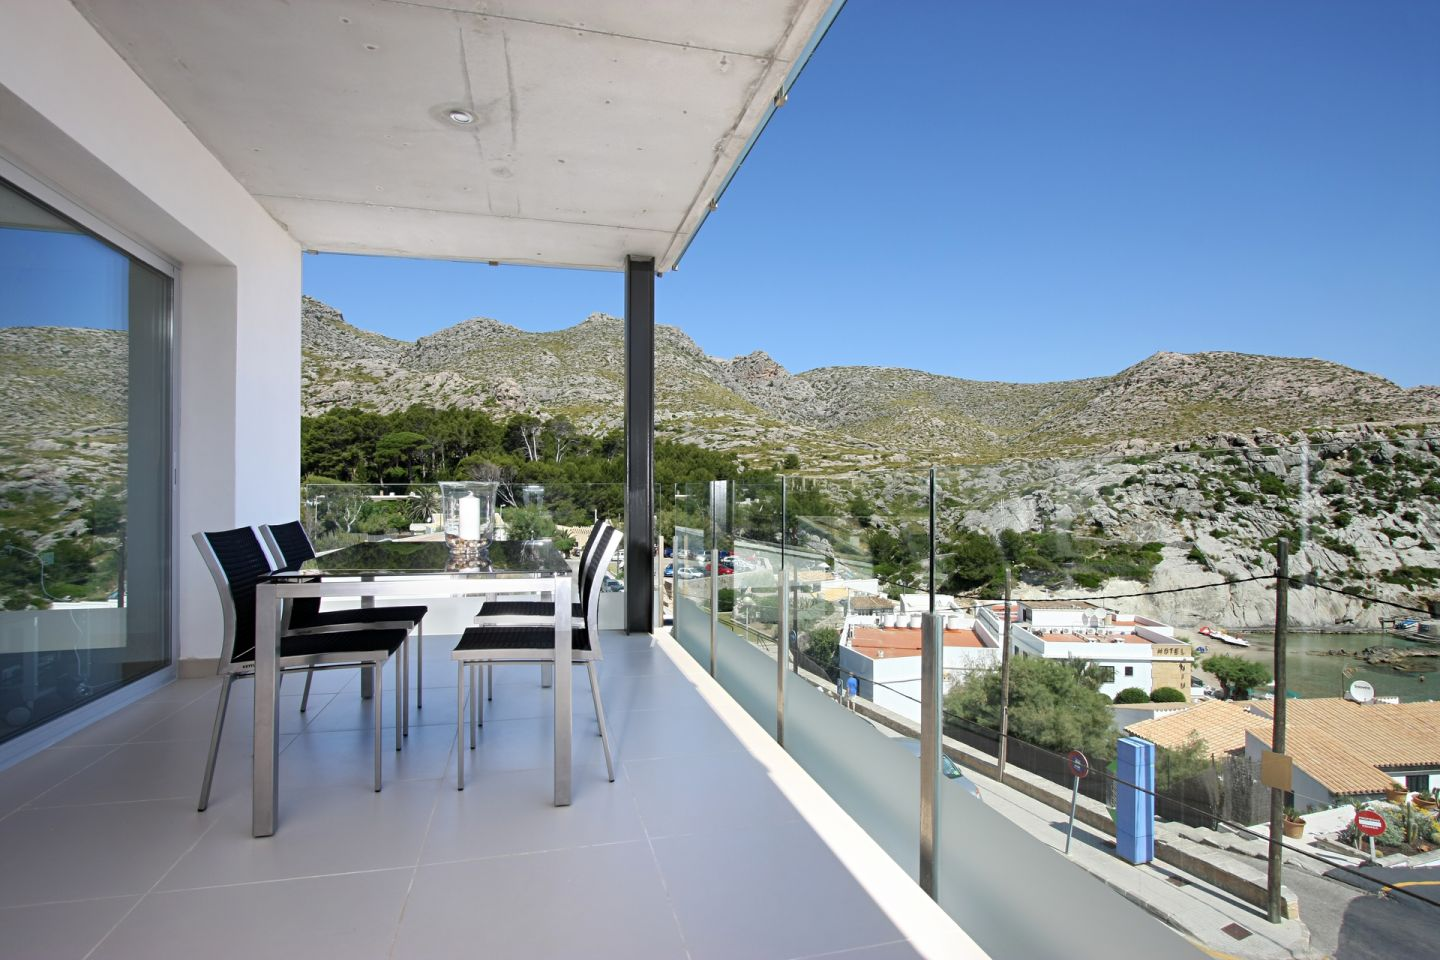 2 Bed Other for sale in Cala San Vicente 13